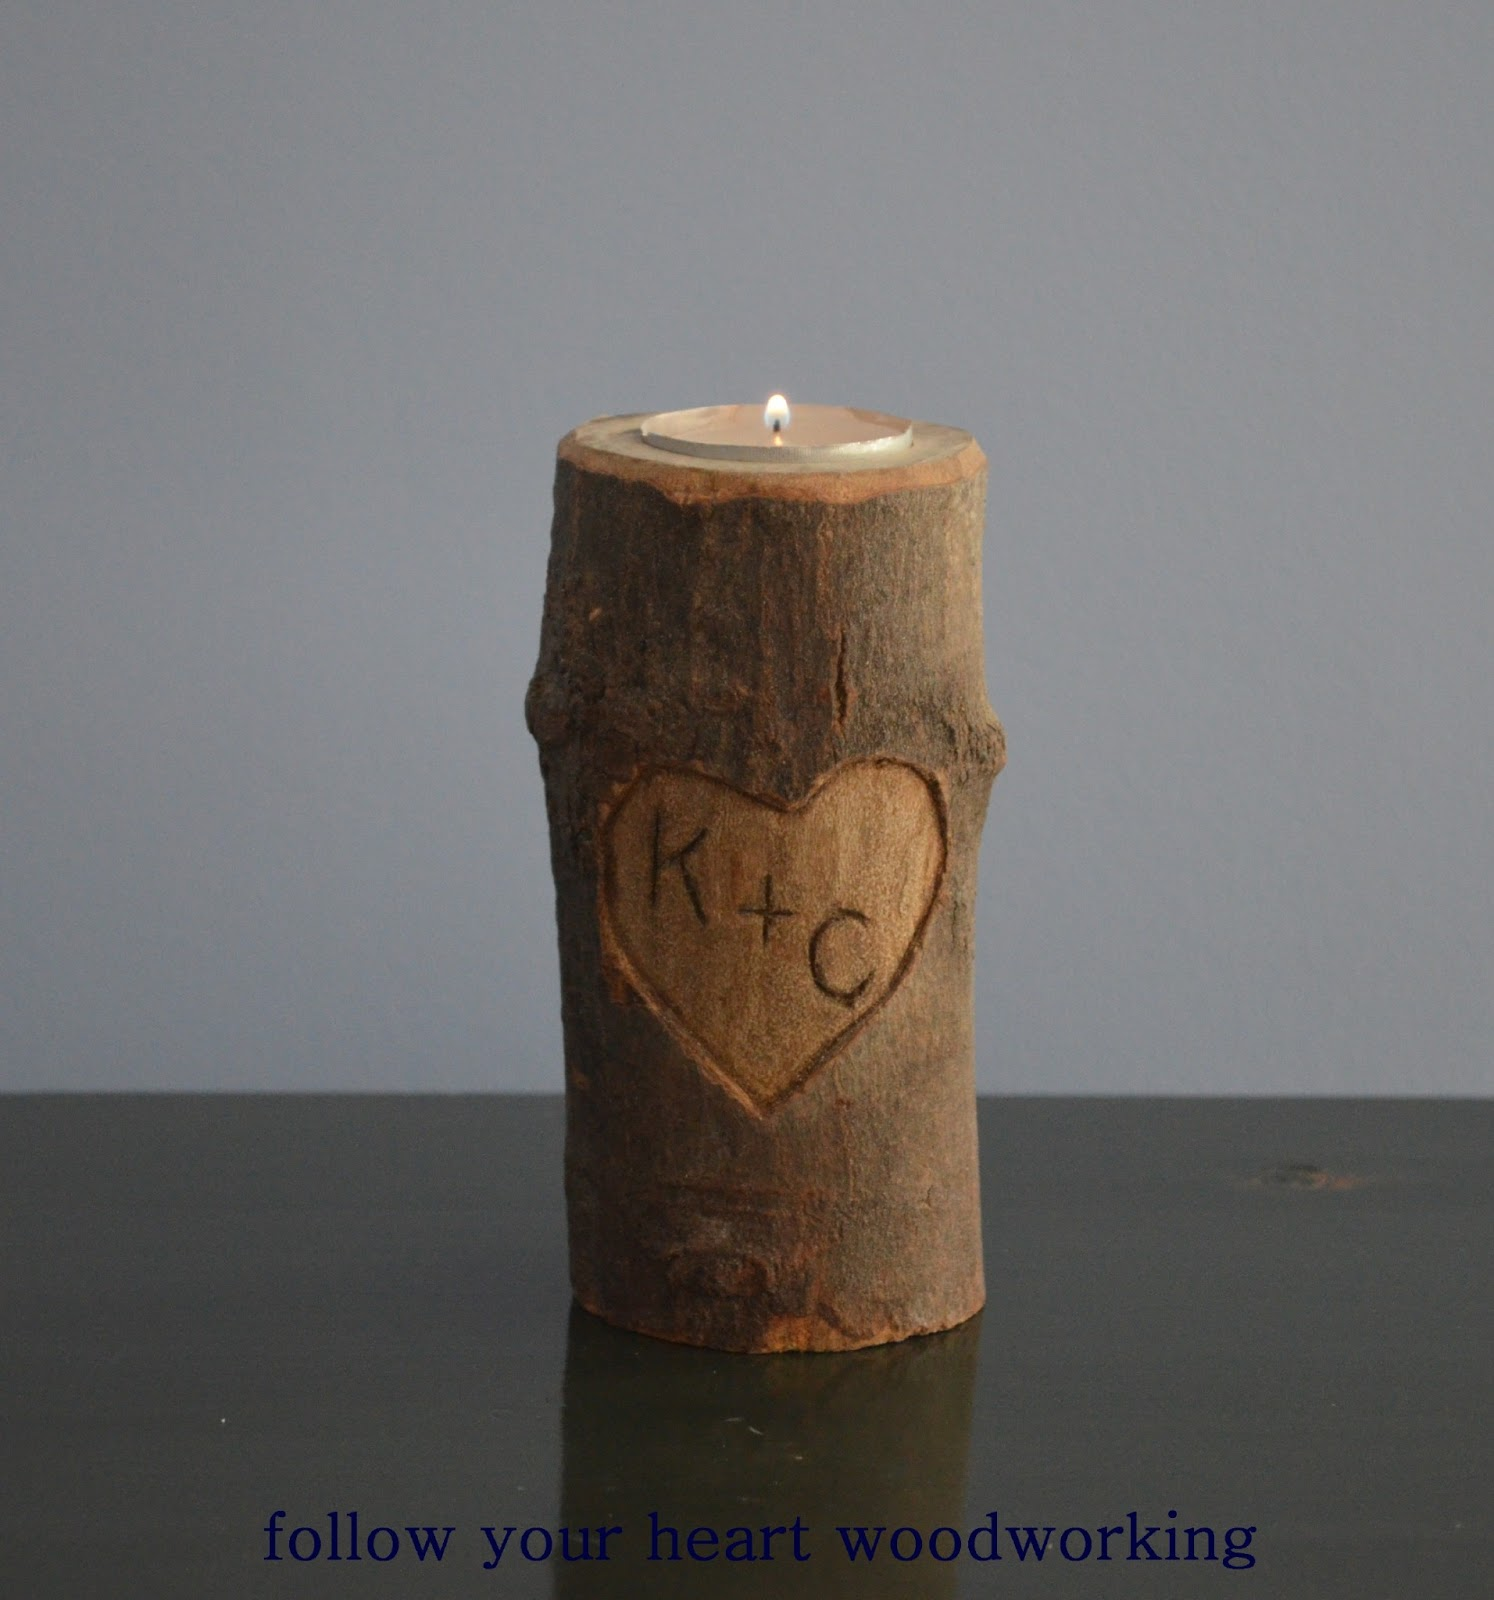 follow your heart woodworking log candle holder